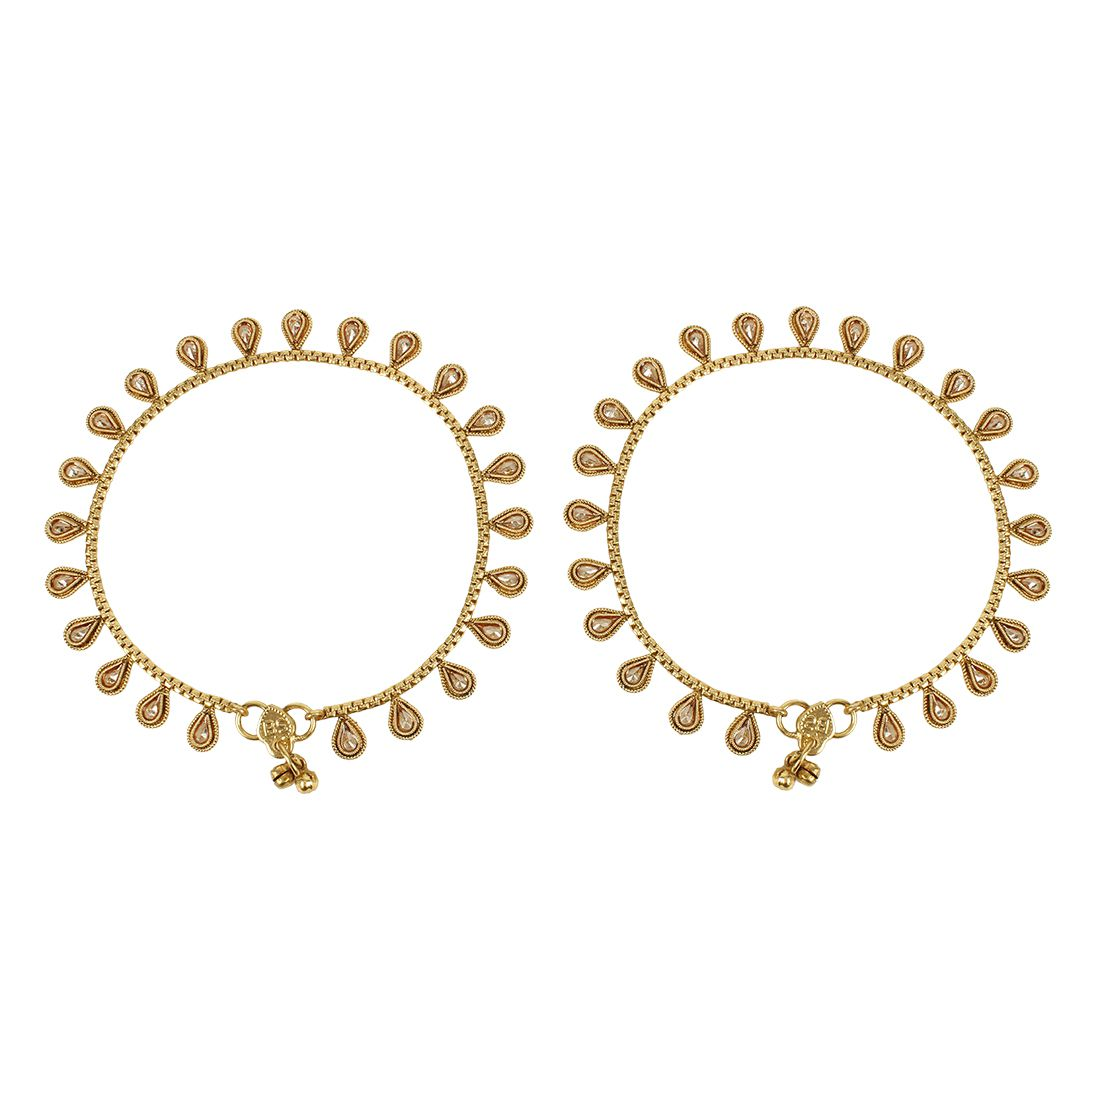 MUCH MORE Amazing Gold Plated Crystal Payal Indian Anklet Party Wear Jewellery for Women's